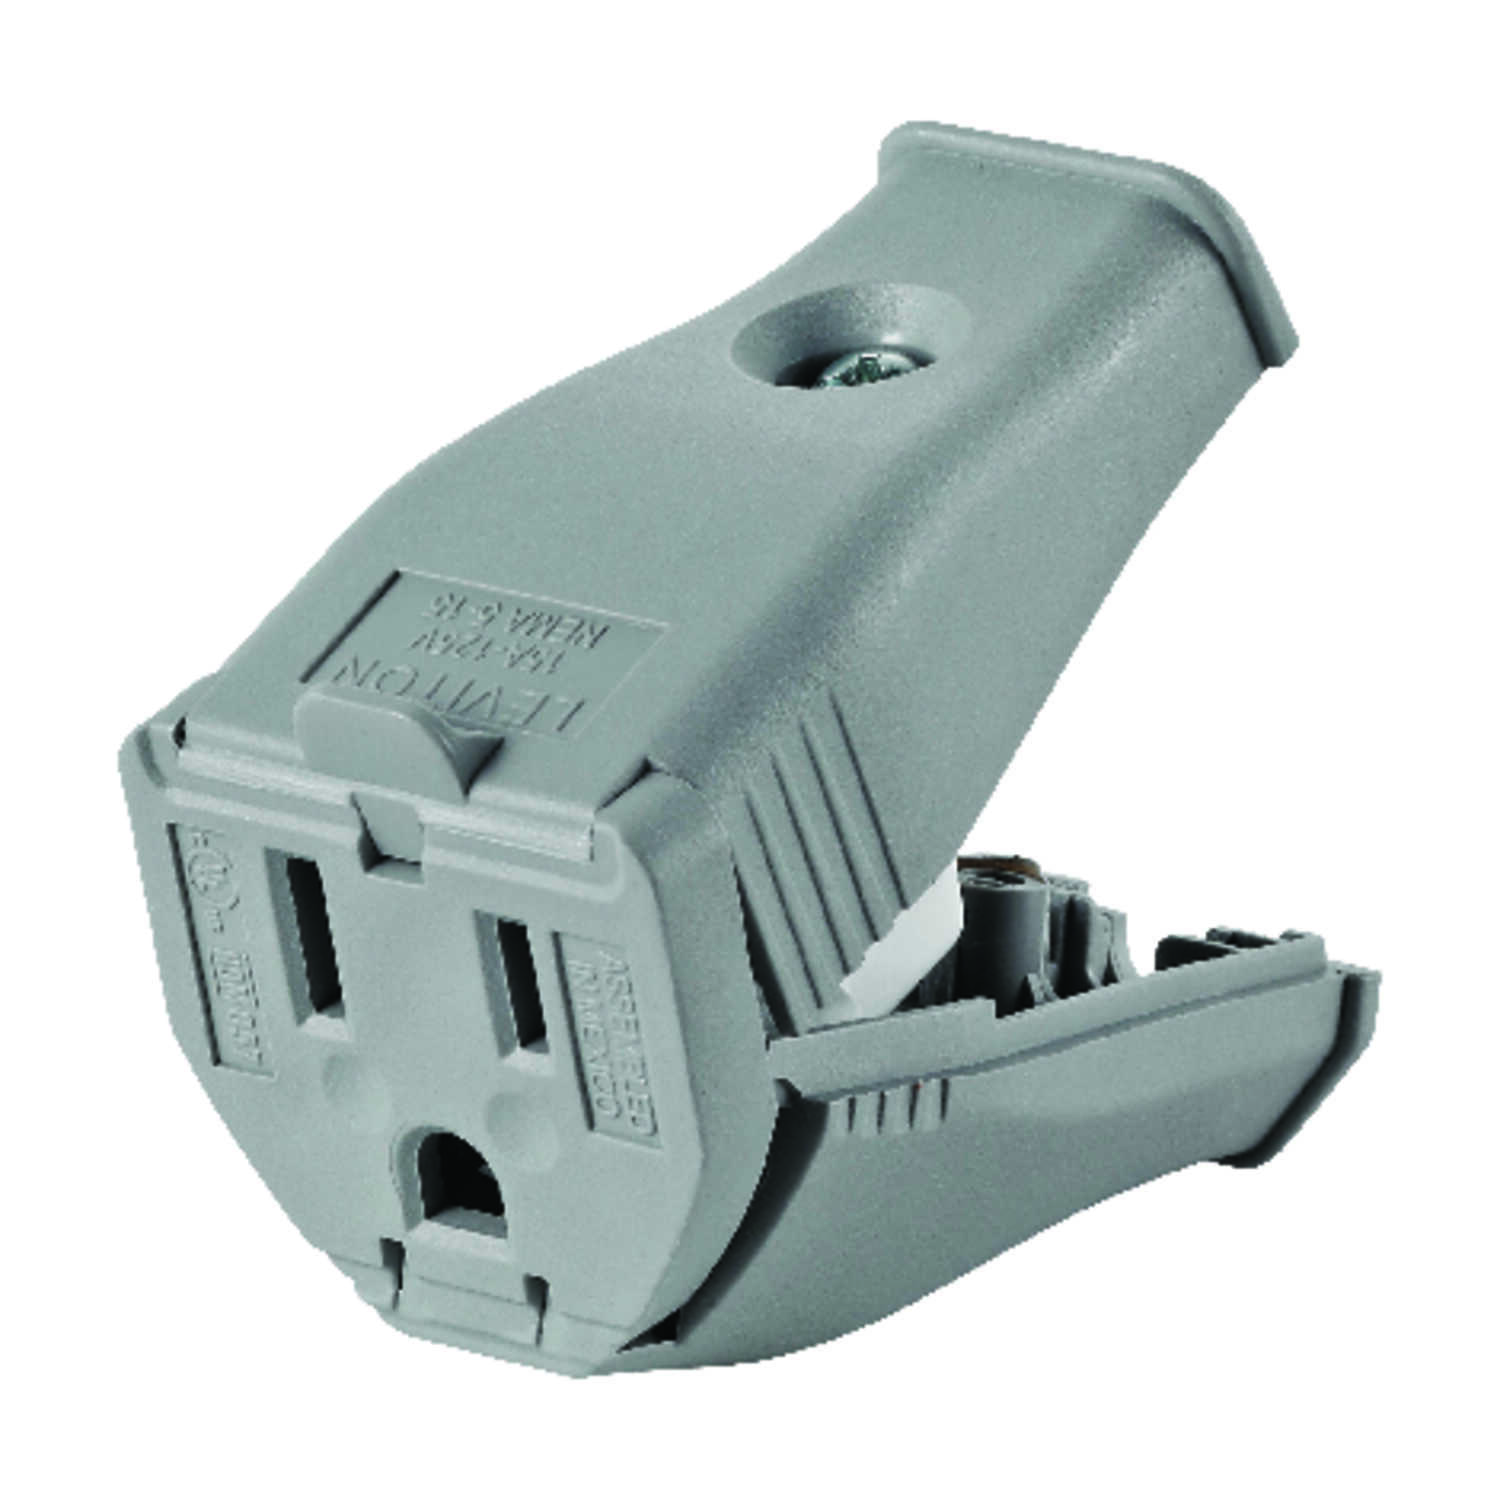 Leviton  Commercial and Residential  Thermoplastic  Straight Blade  Connector  5-15R  2 Pole 3 Wire